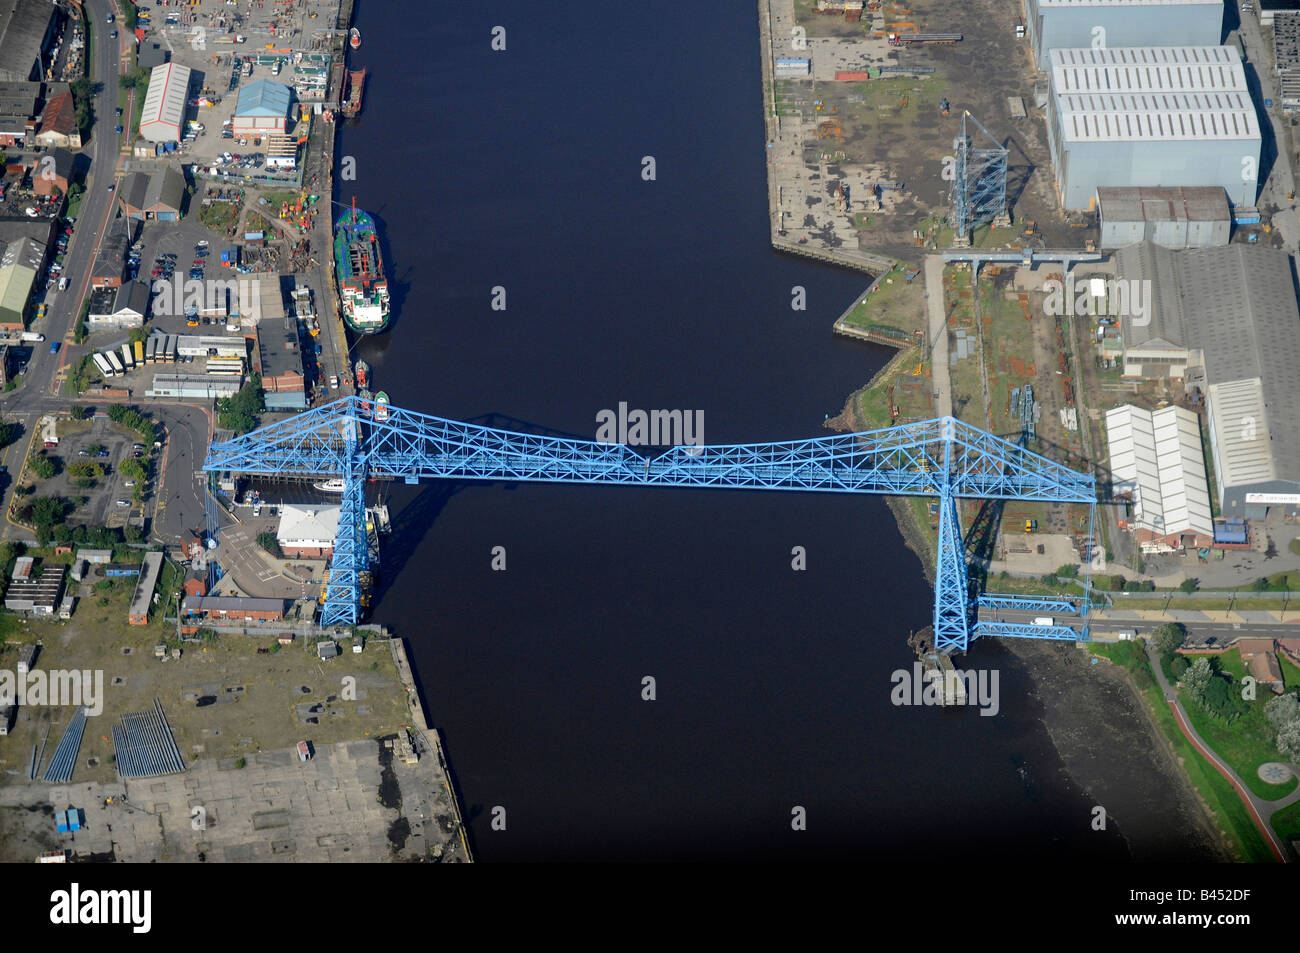 River Tees and the Transporter Bridge, from the air, Teeside, Northern England - Stock Image